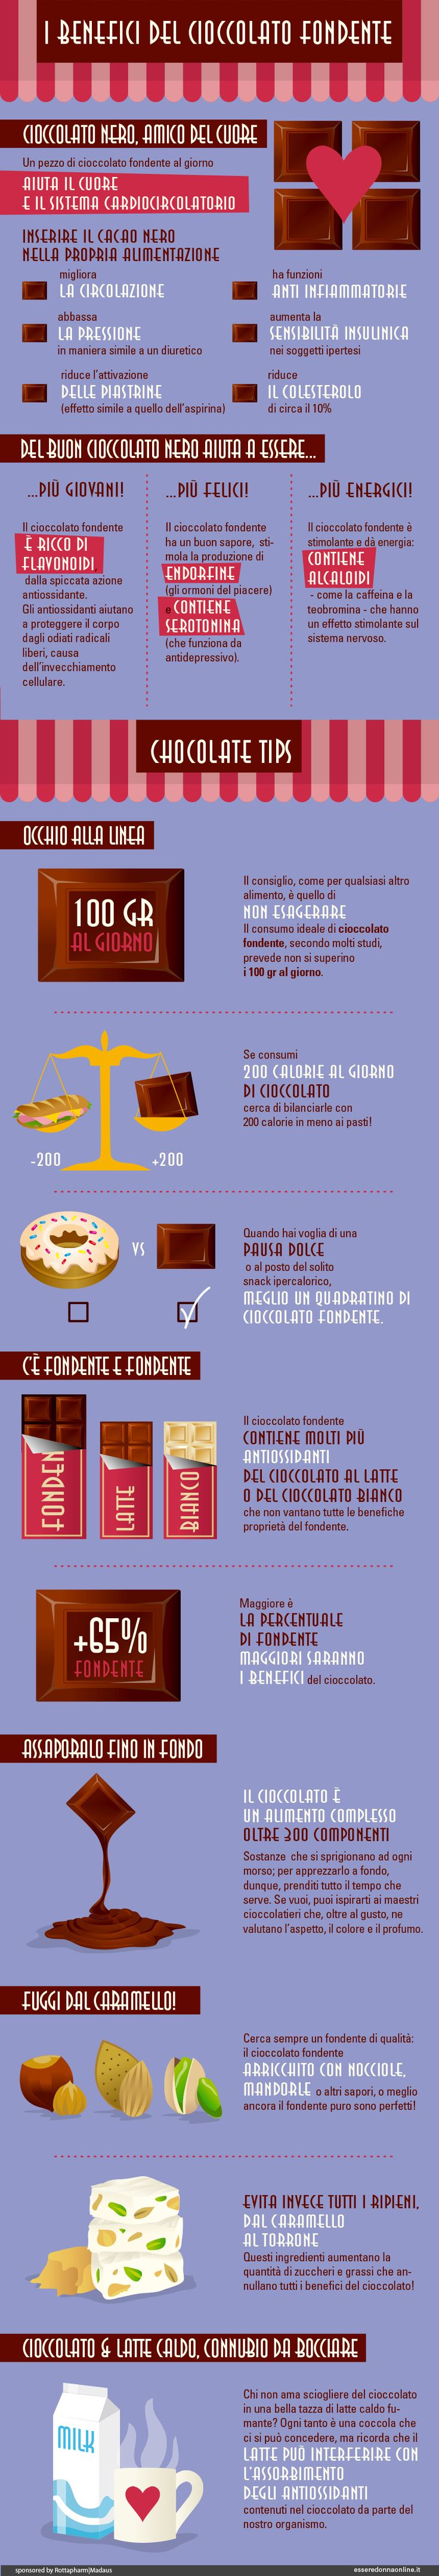 infografica cioccolato #infographic #food